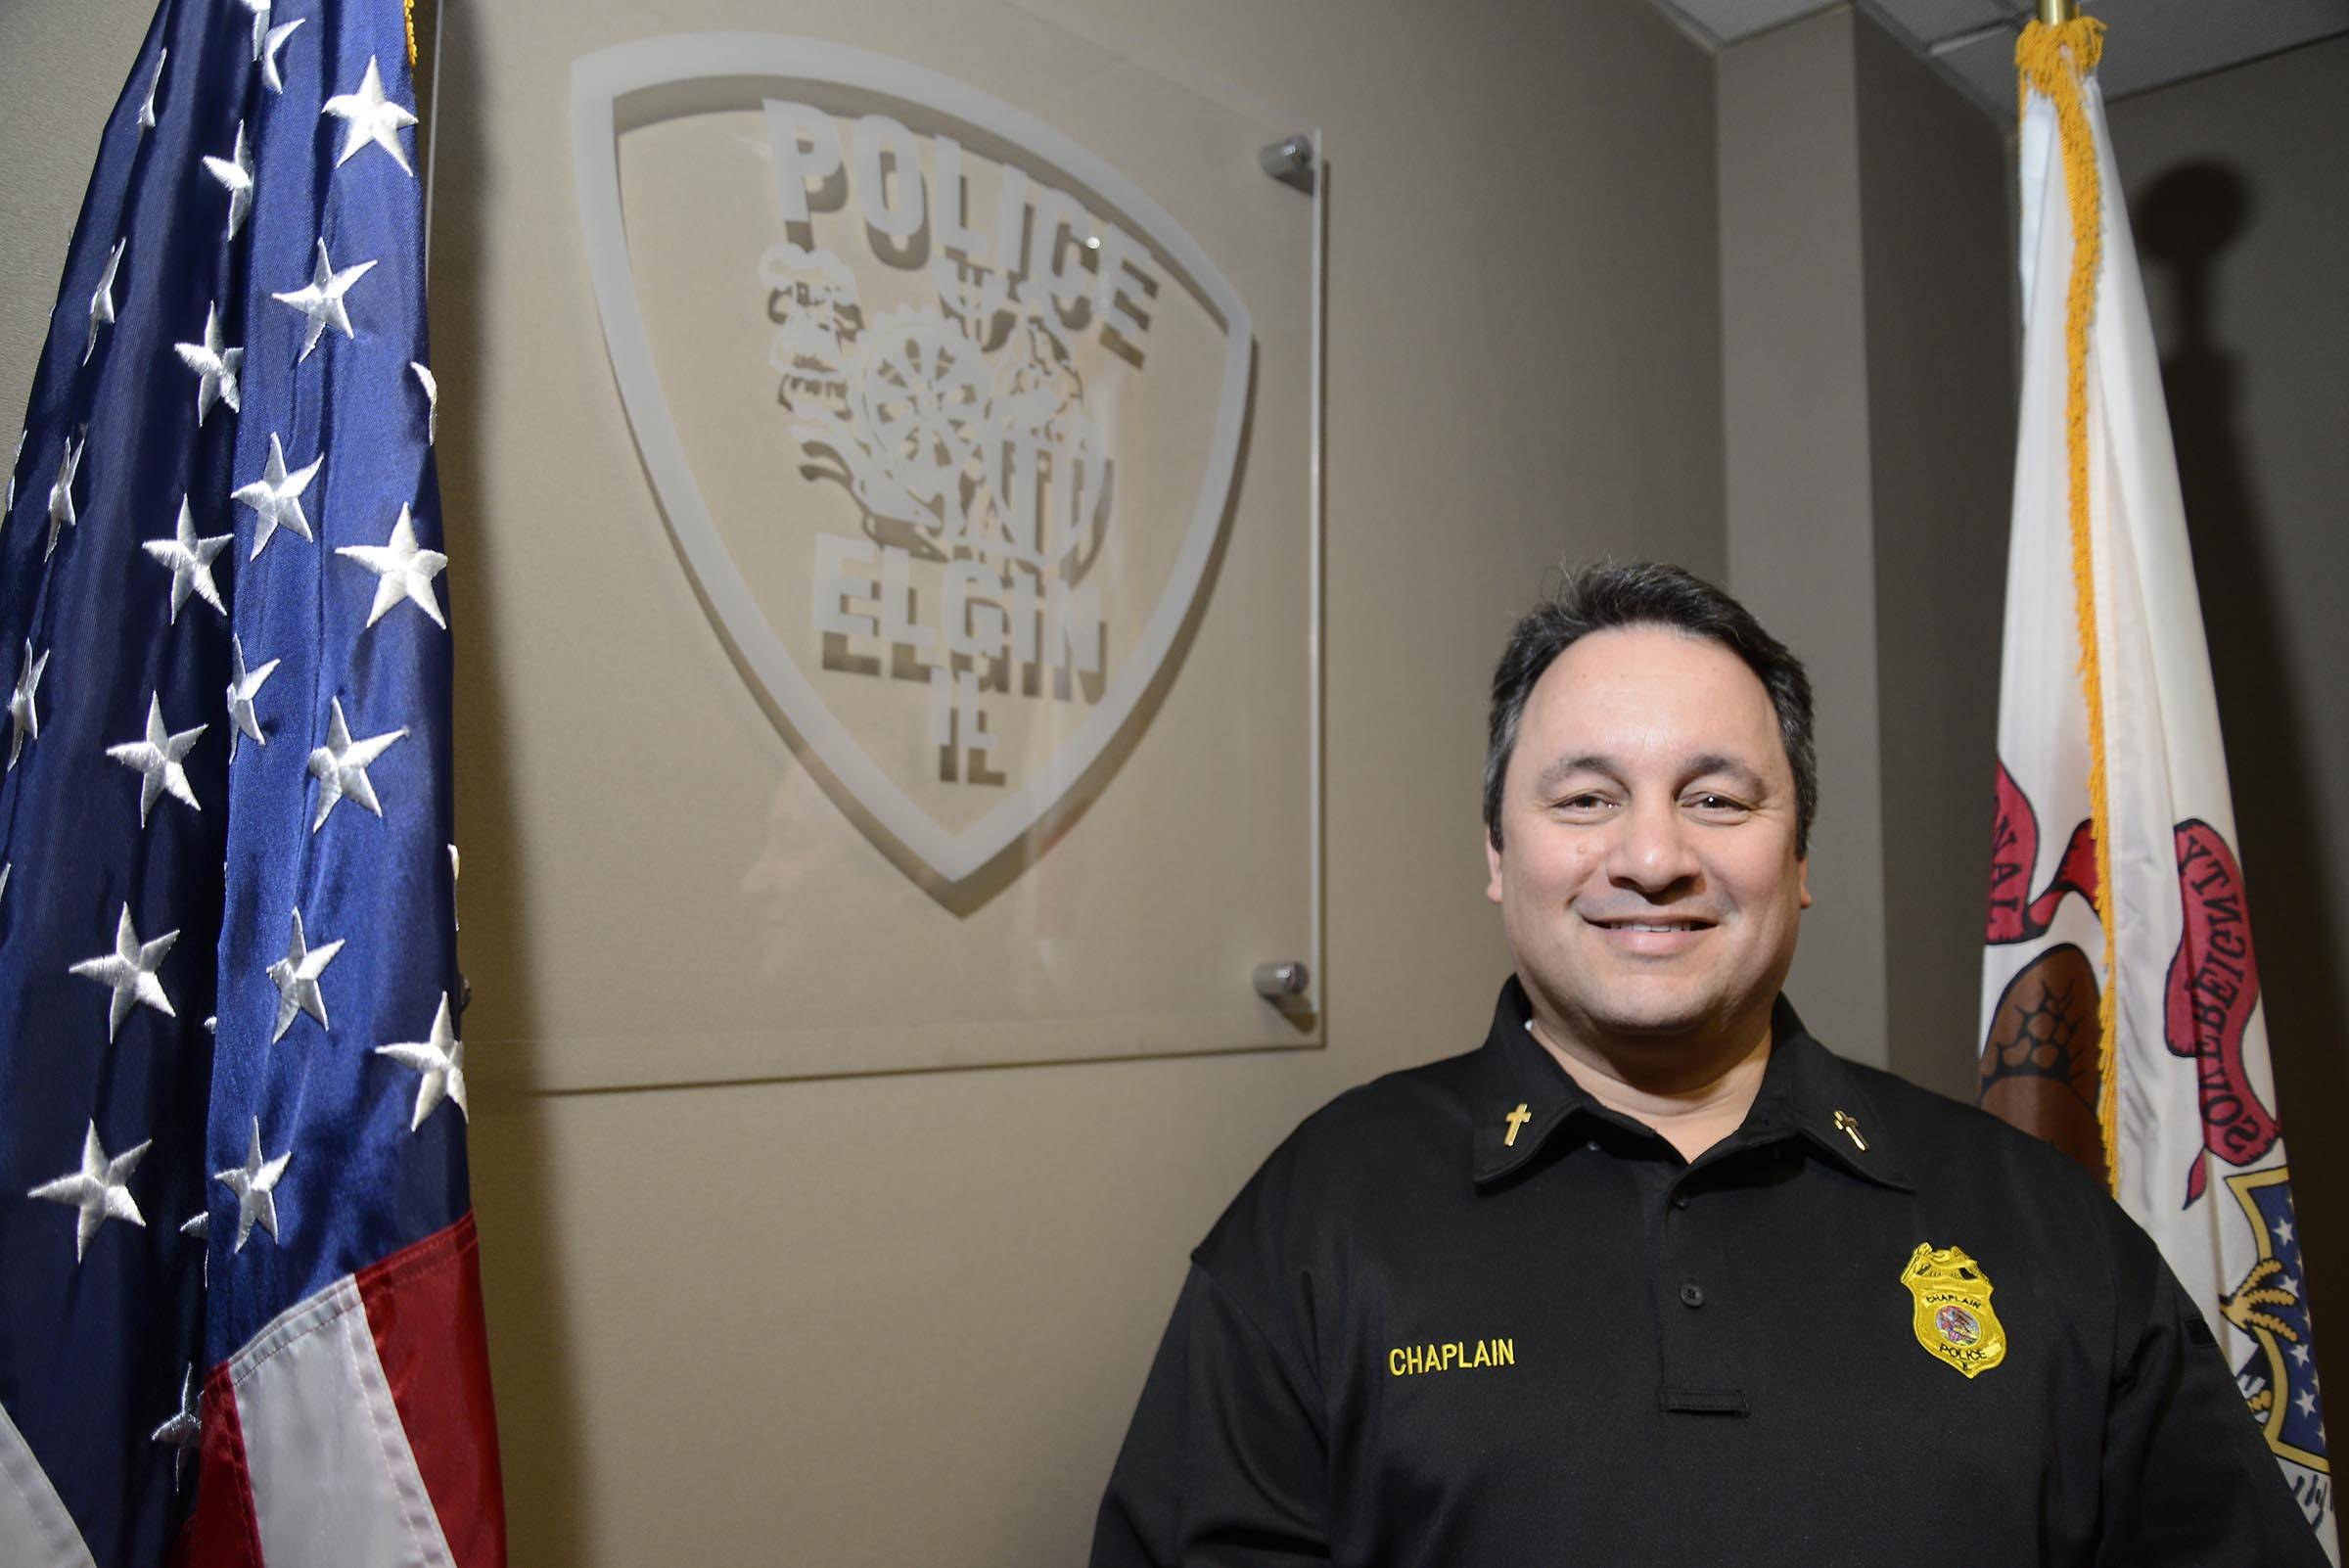 Senior Chaplain Tim Perry of the Elgin Police Department has spearheaded the expansion of the chaplaincy program by adding several members since last summer. He's a seminary school graduate who works as human resources manager in Schaumburg.